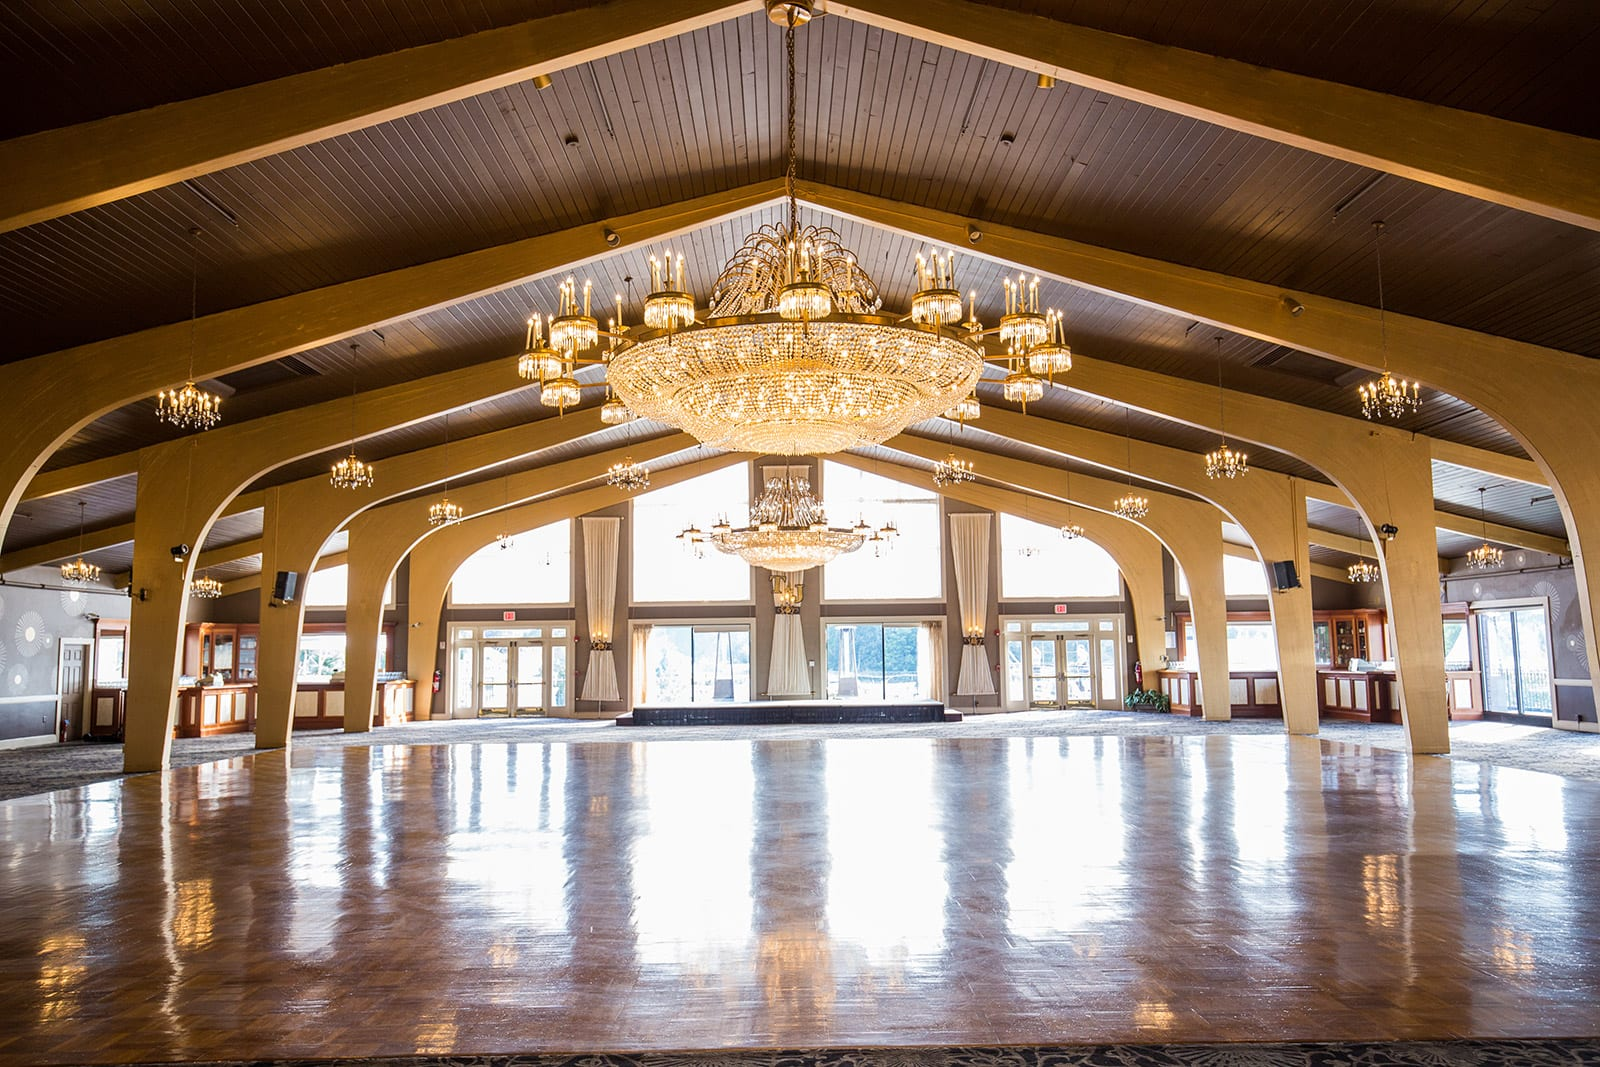 Harborview Ballroom cleared of seating to show scale.